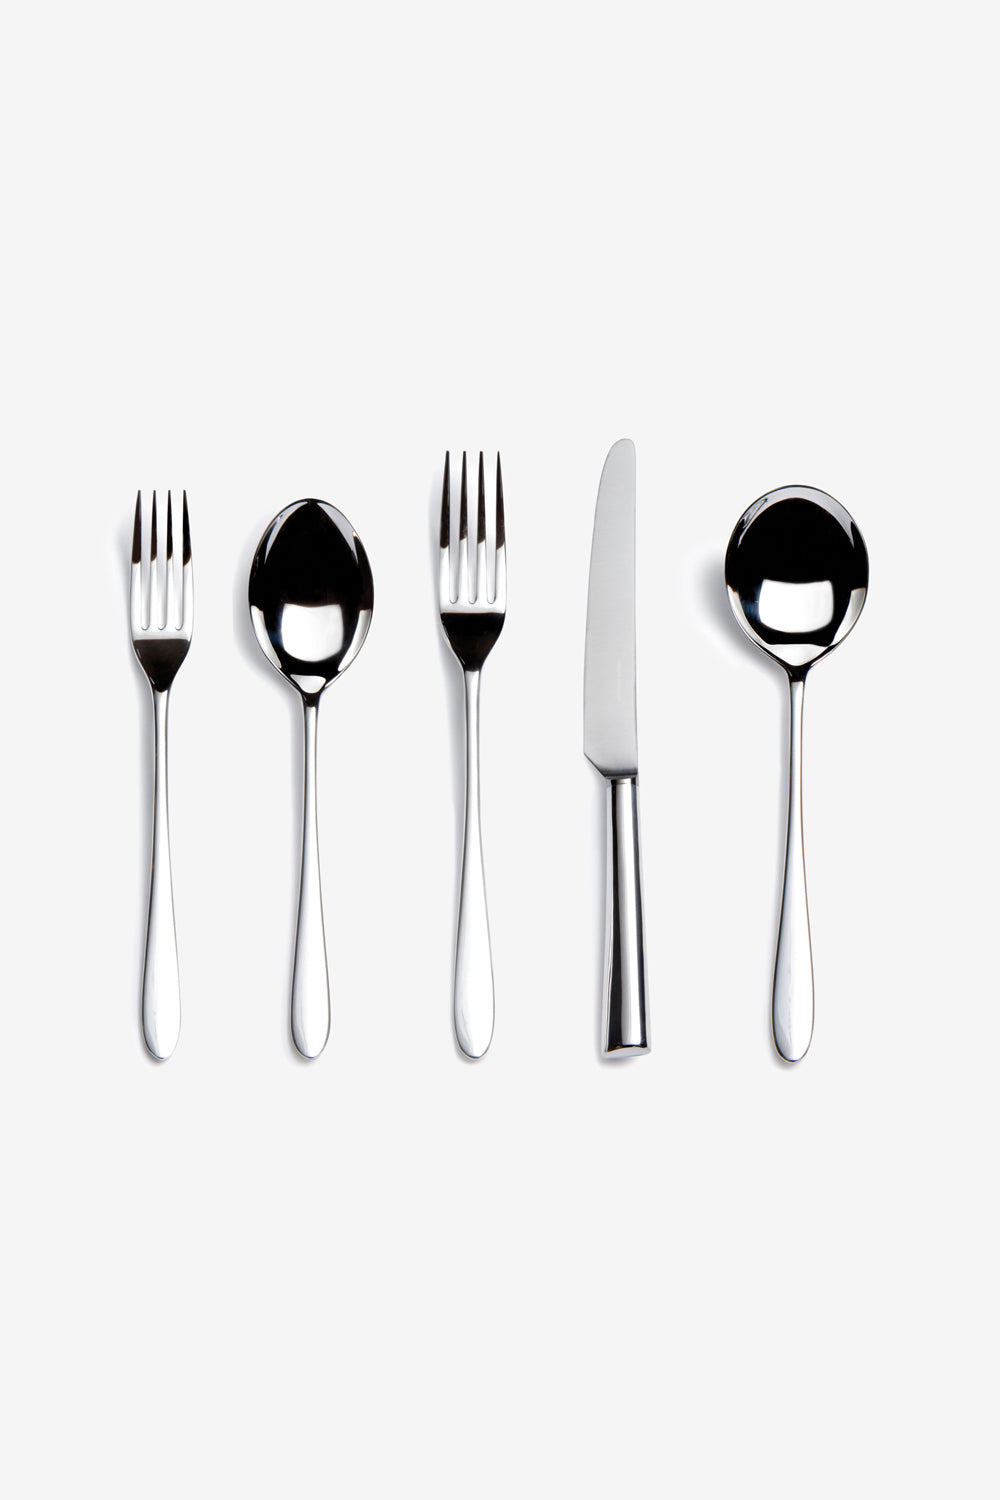 Alabama Chanin David Mellor Pride 5-Piece Stainless Steel Set Flatware